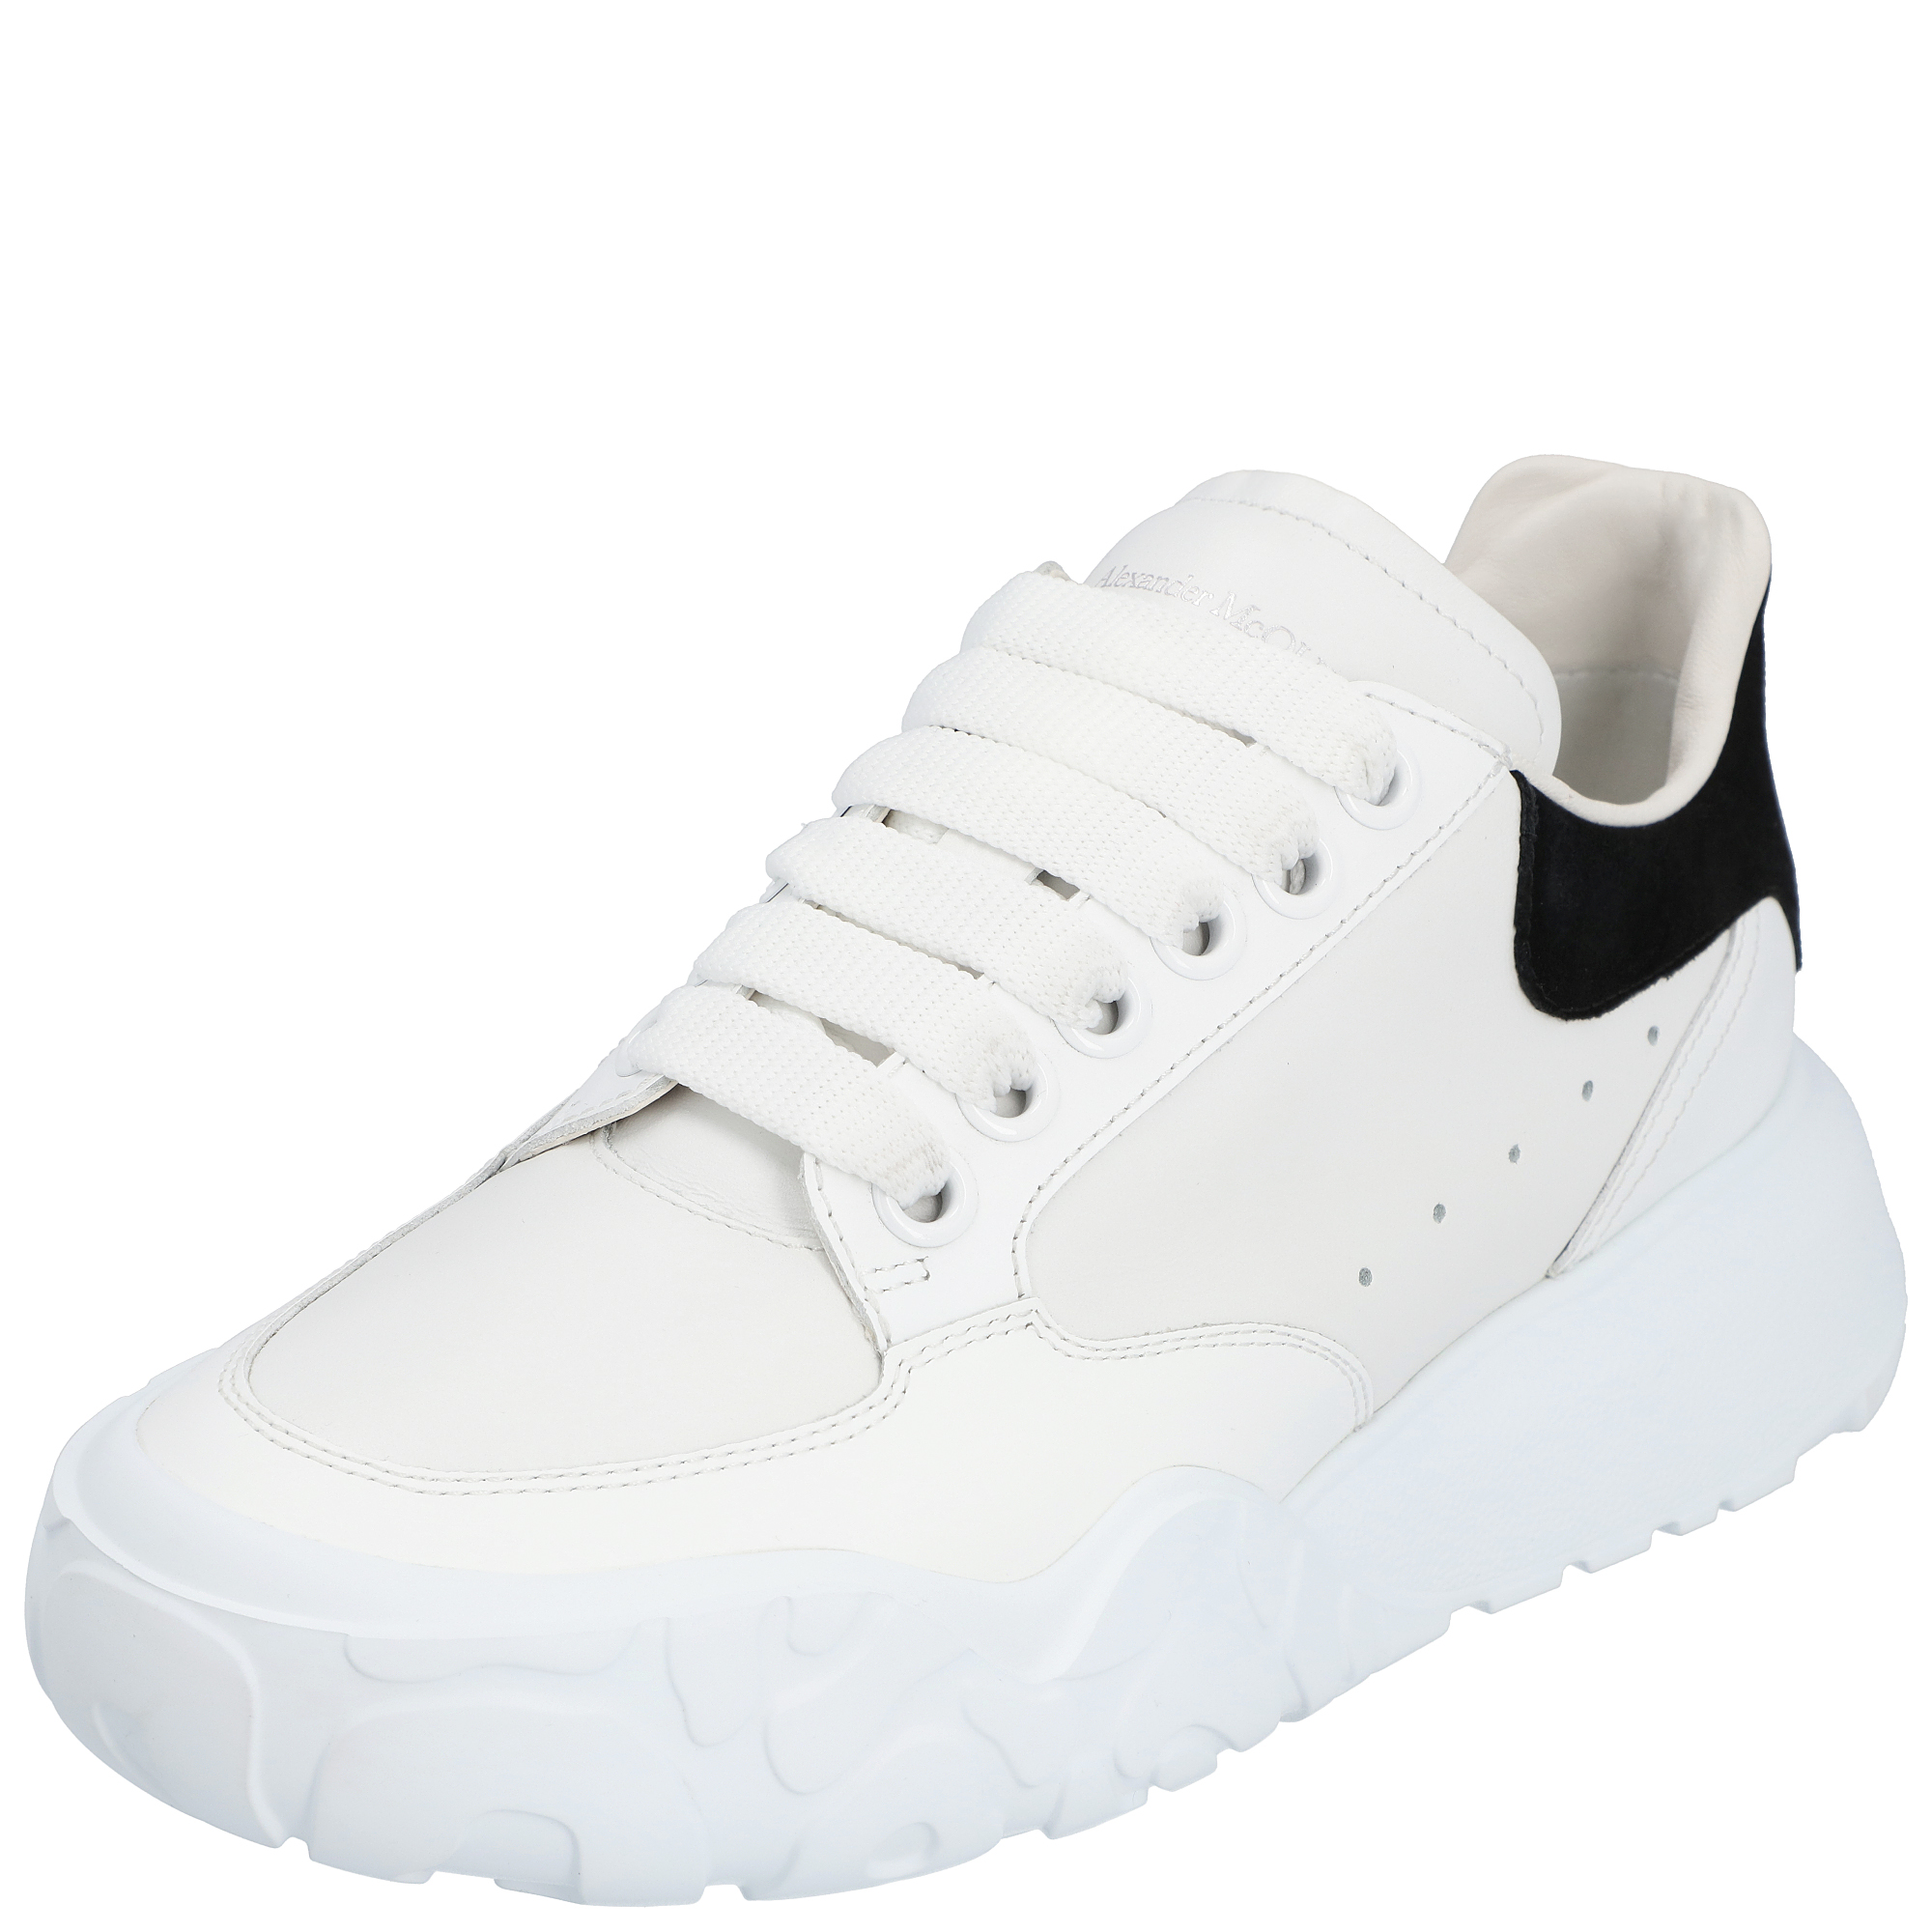 Pre-owned Alexander Mcqueen Black/white Leather Court Trainer Sneakers Eu 37 (us 6.5/uk 4)